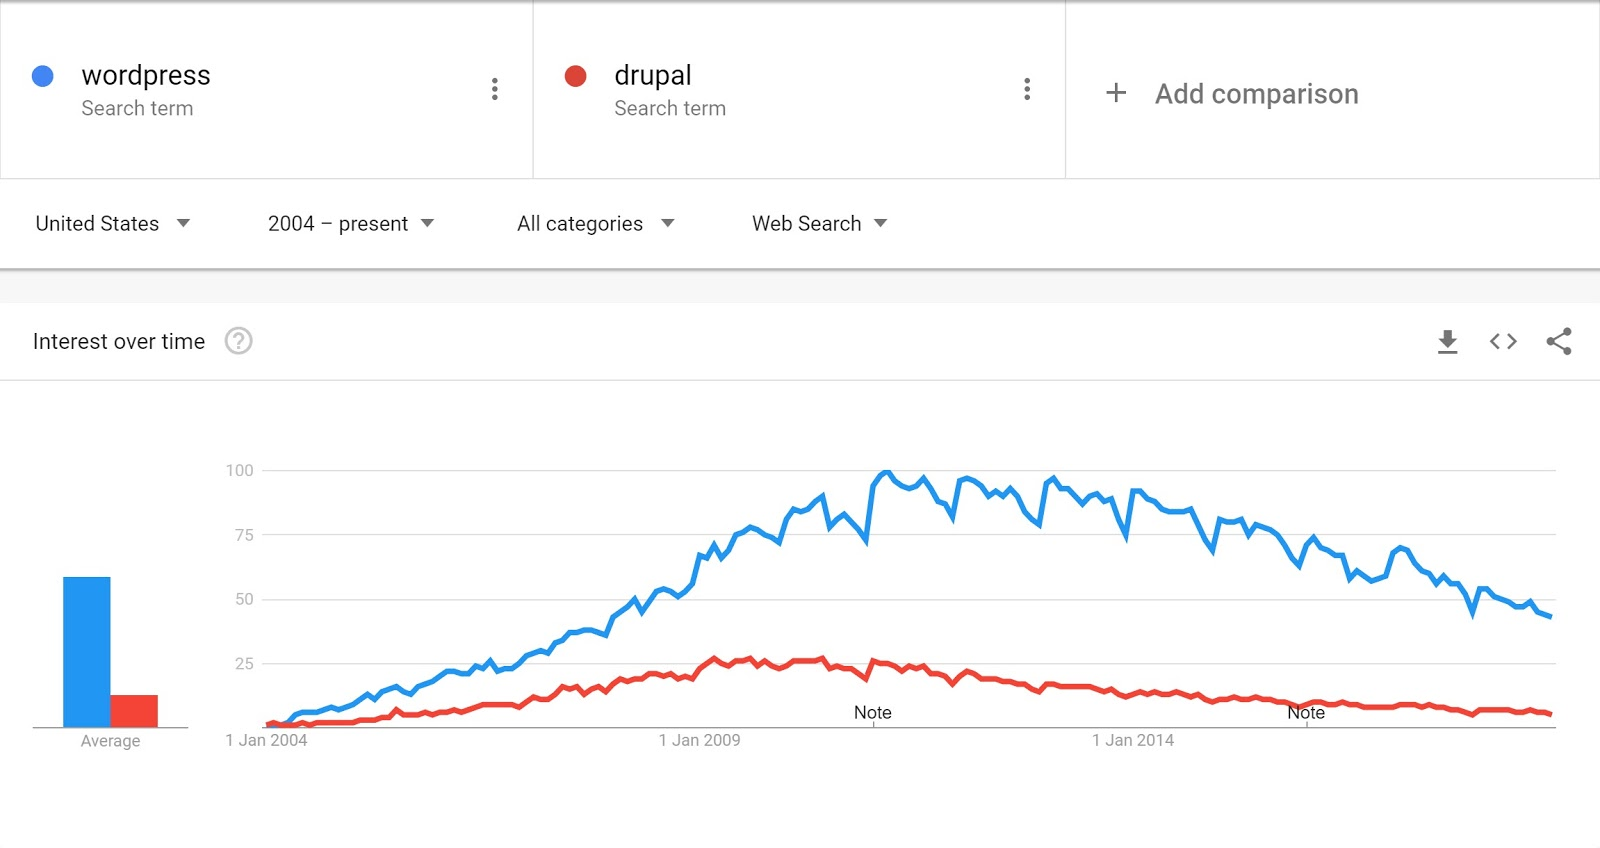 Google Trends WordPress vs Drupal